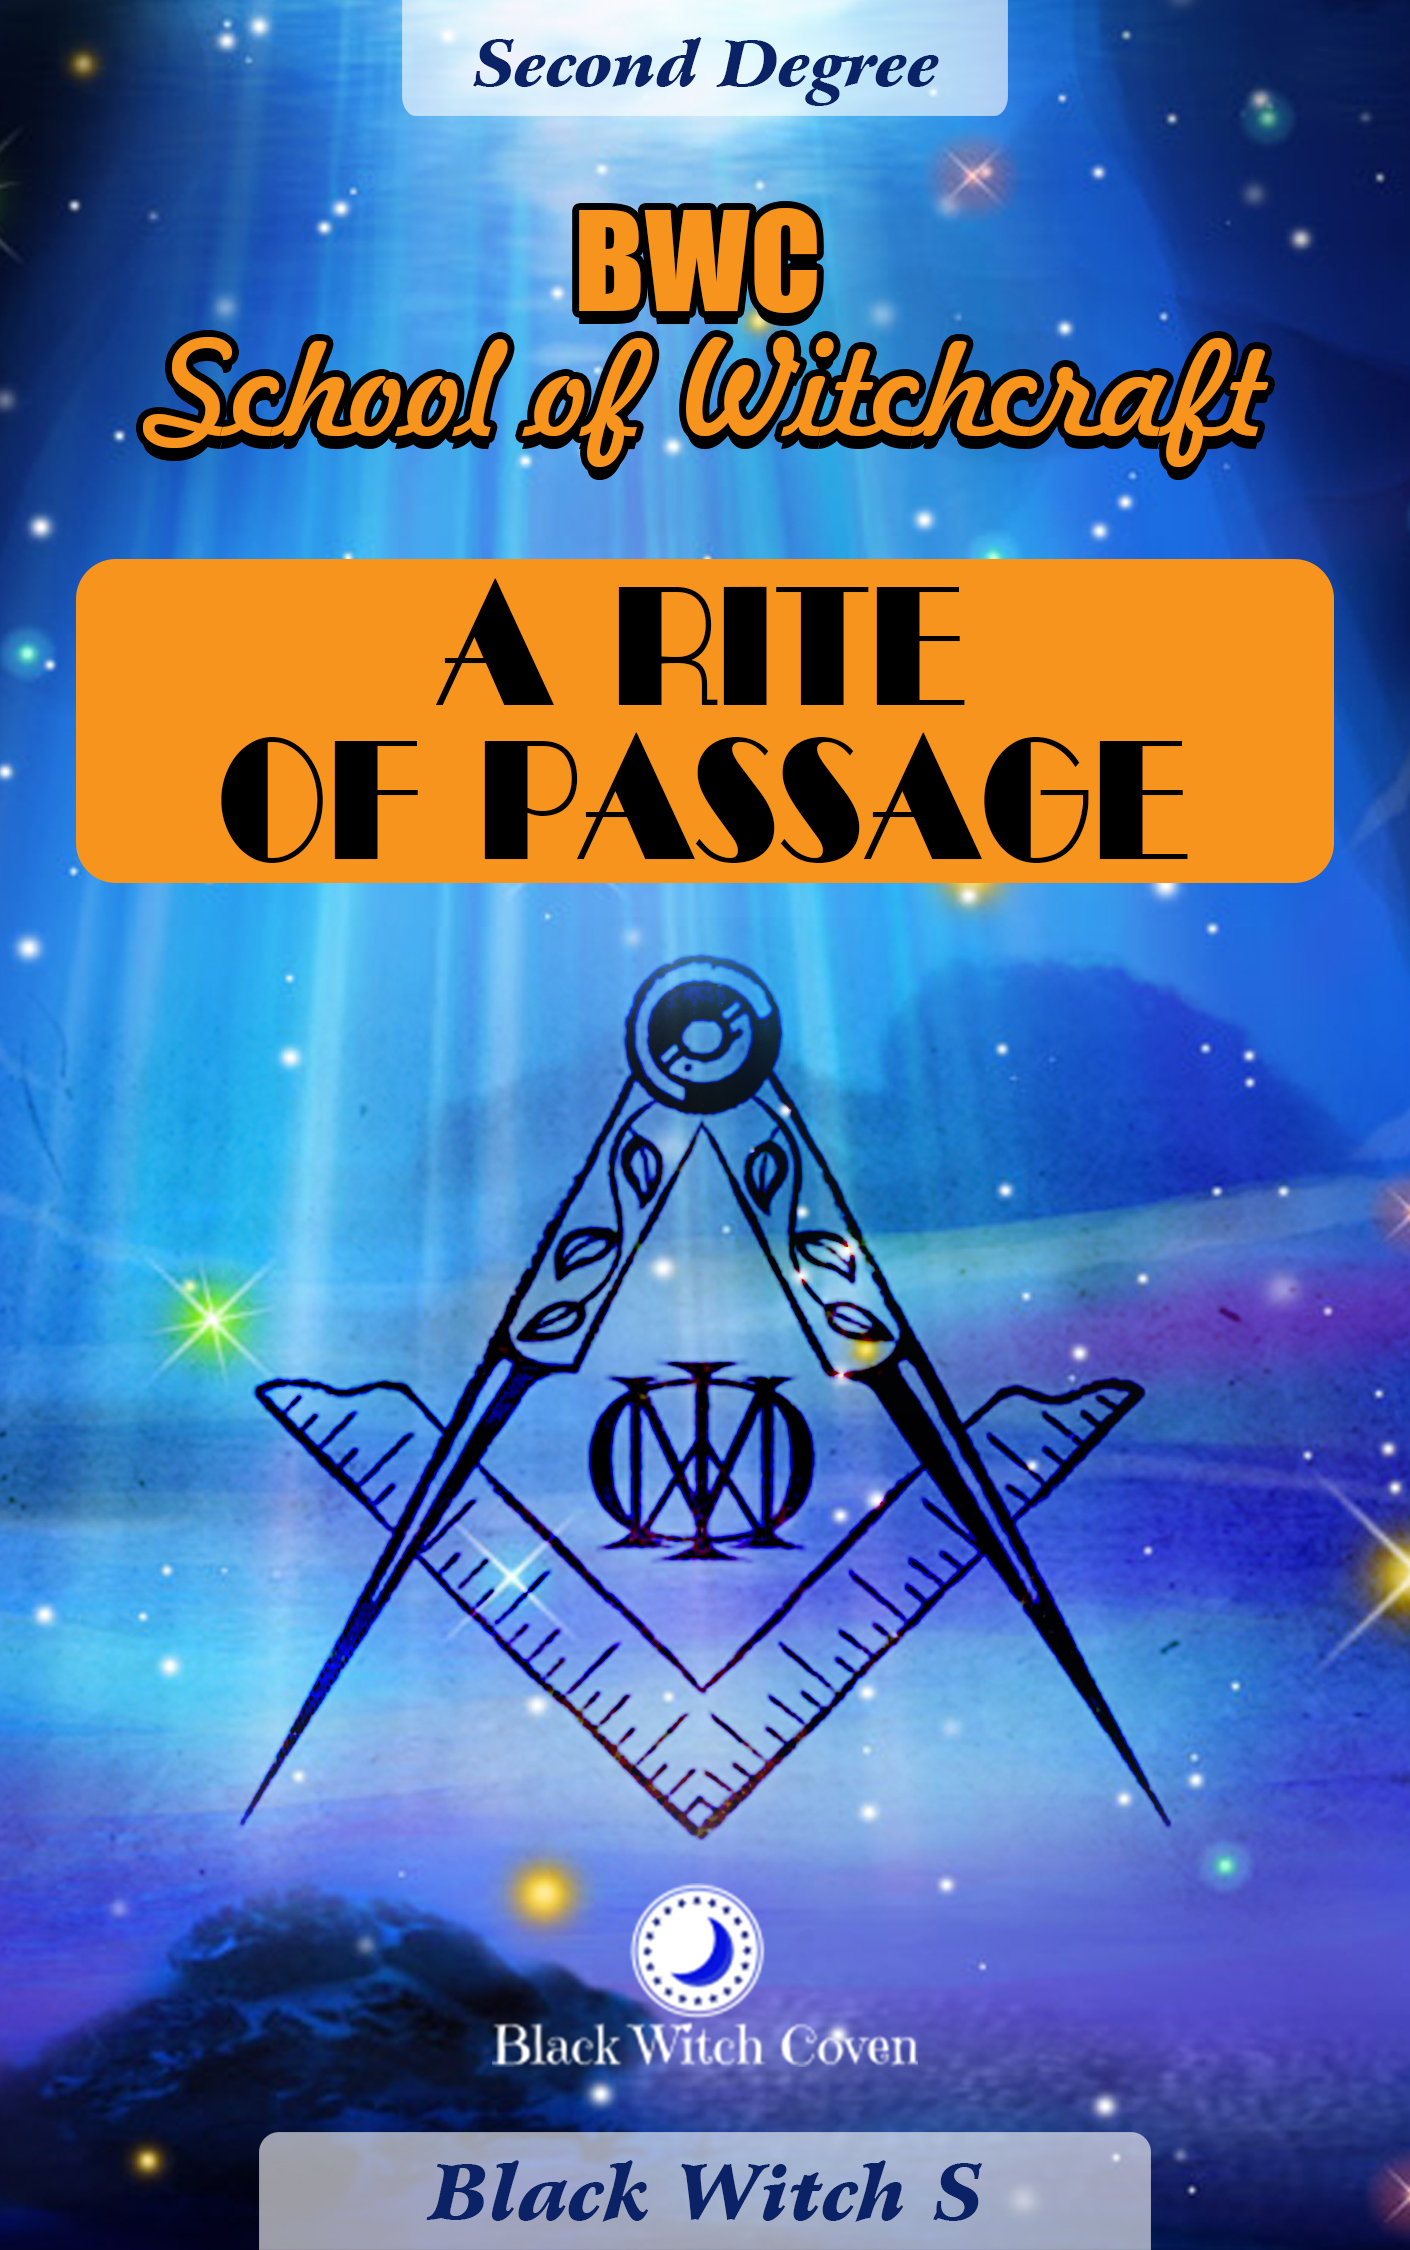 A Rite of Passage  Second Degree, an Ebook by Black Witch S